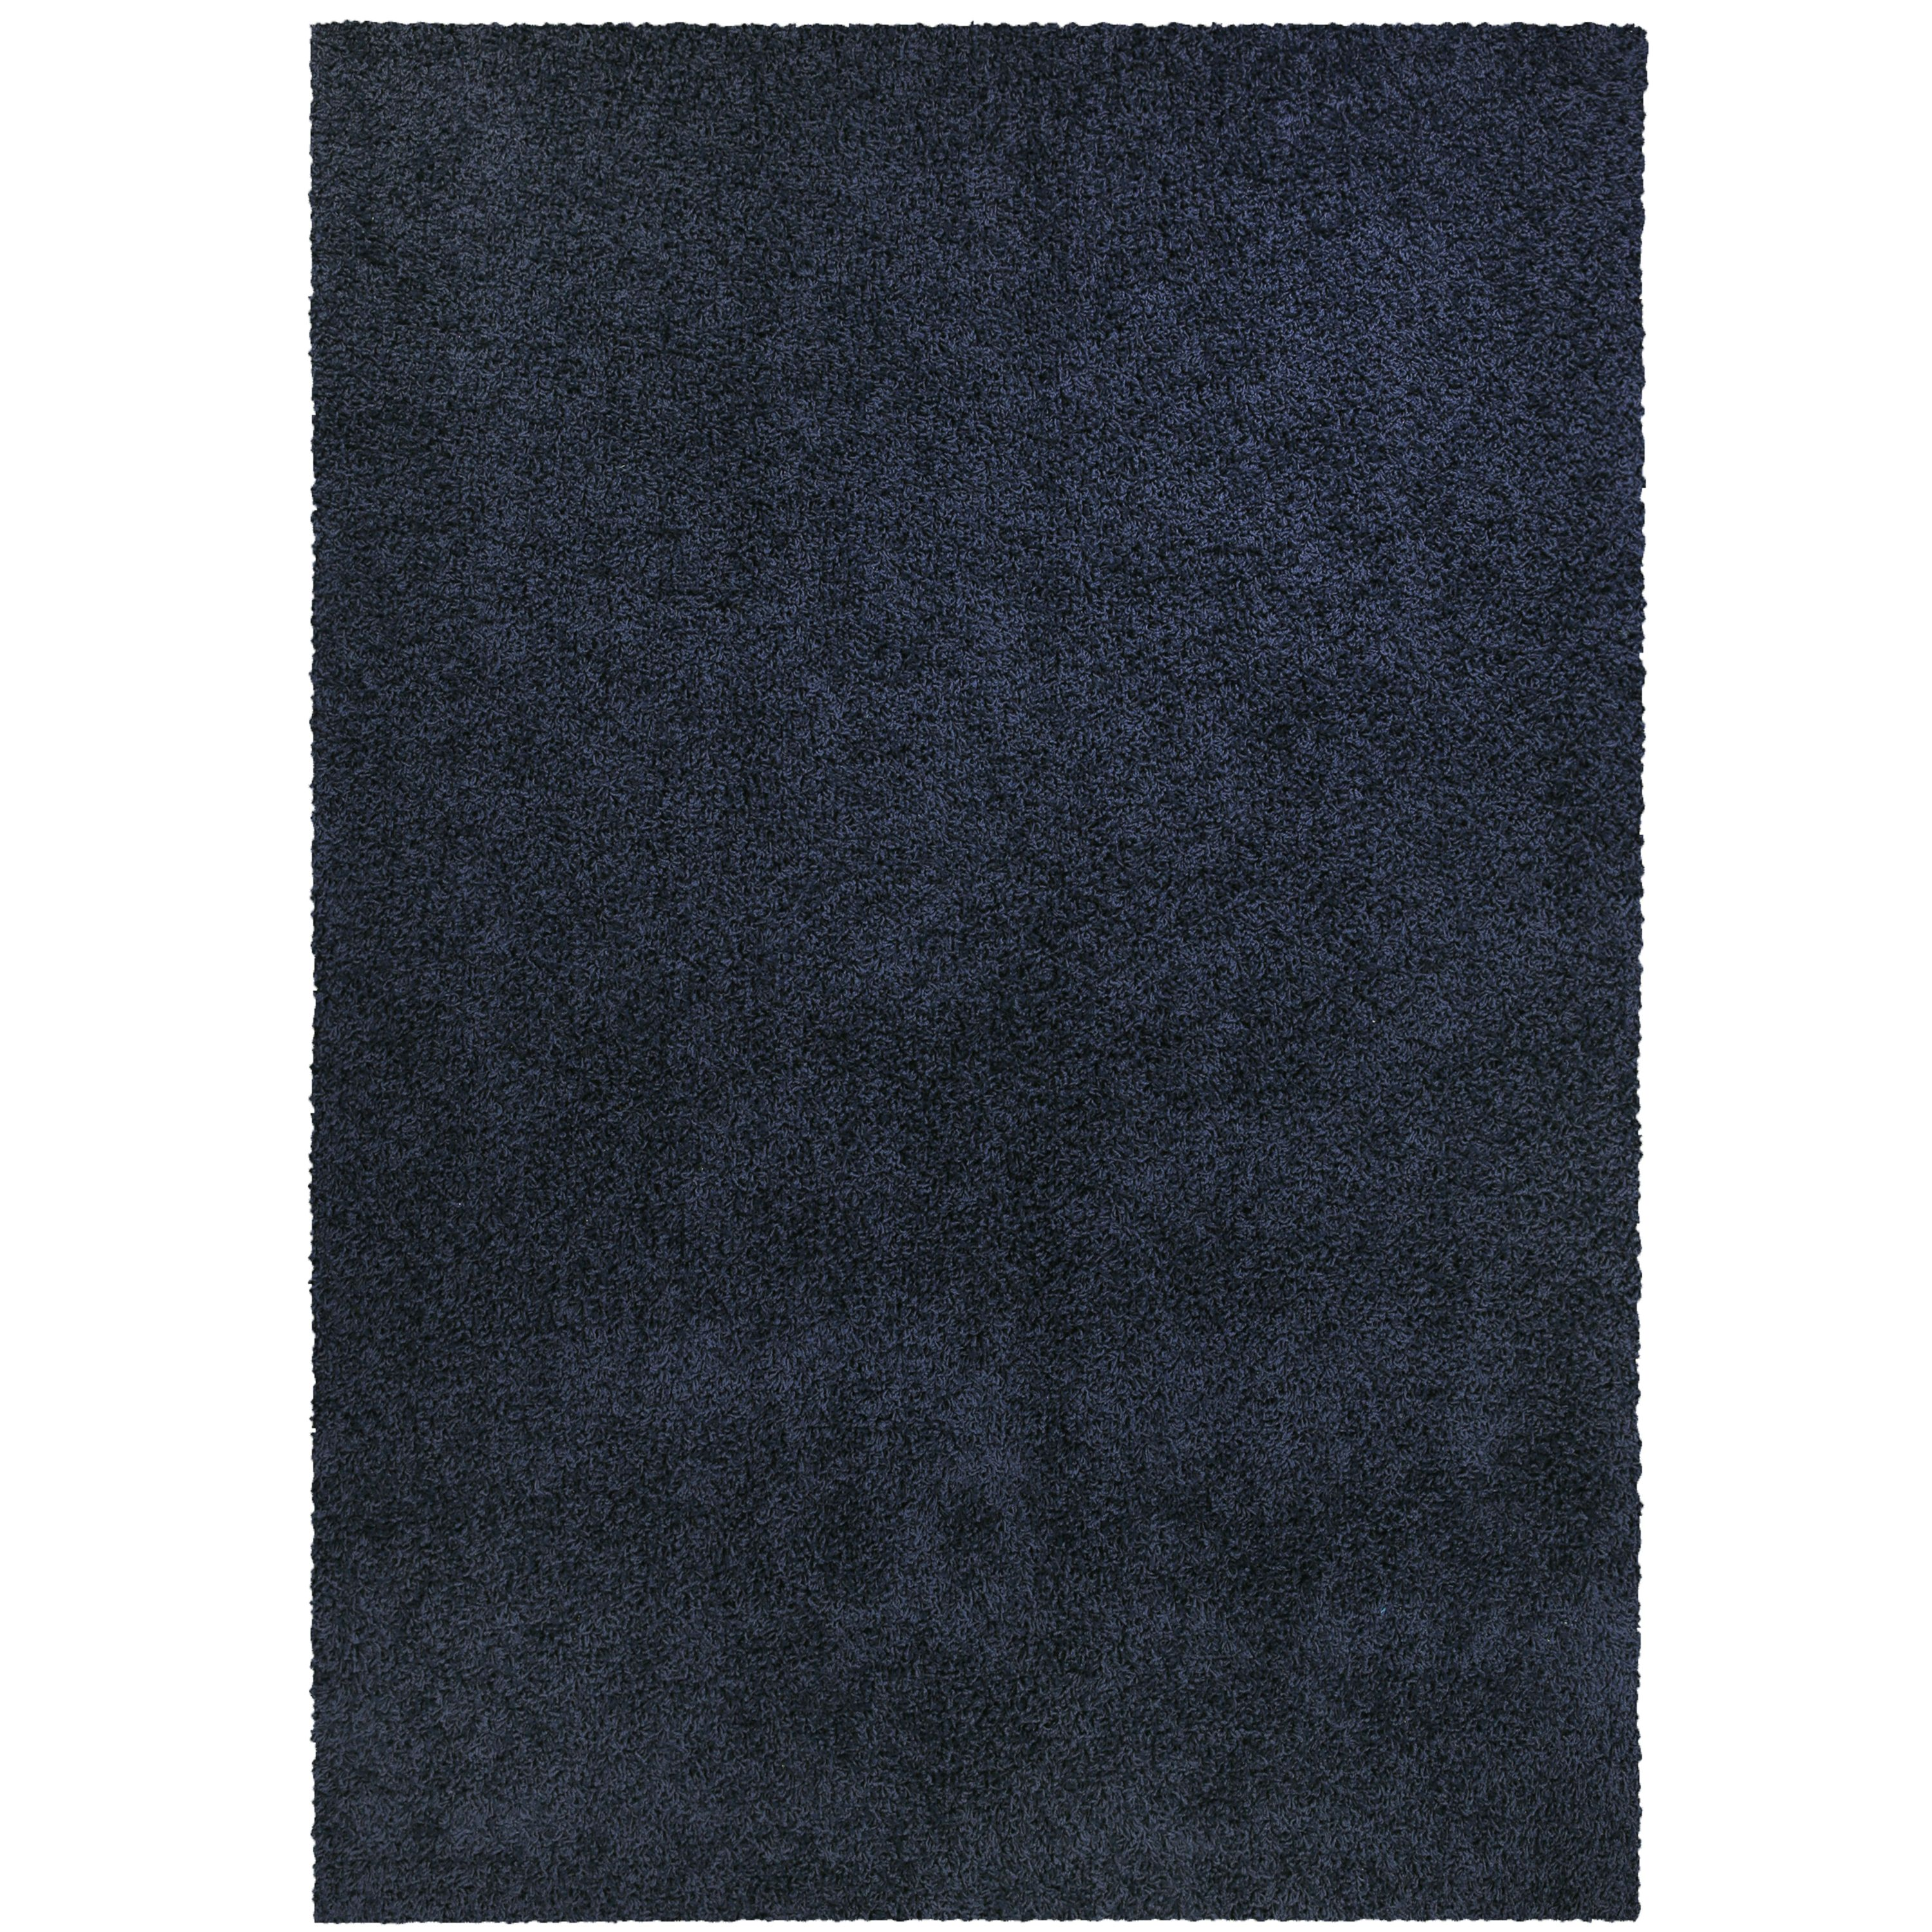 Mainstays Olefin Shag Area Rug or Runner Collection, Multiple Sizes